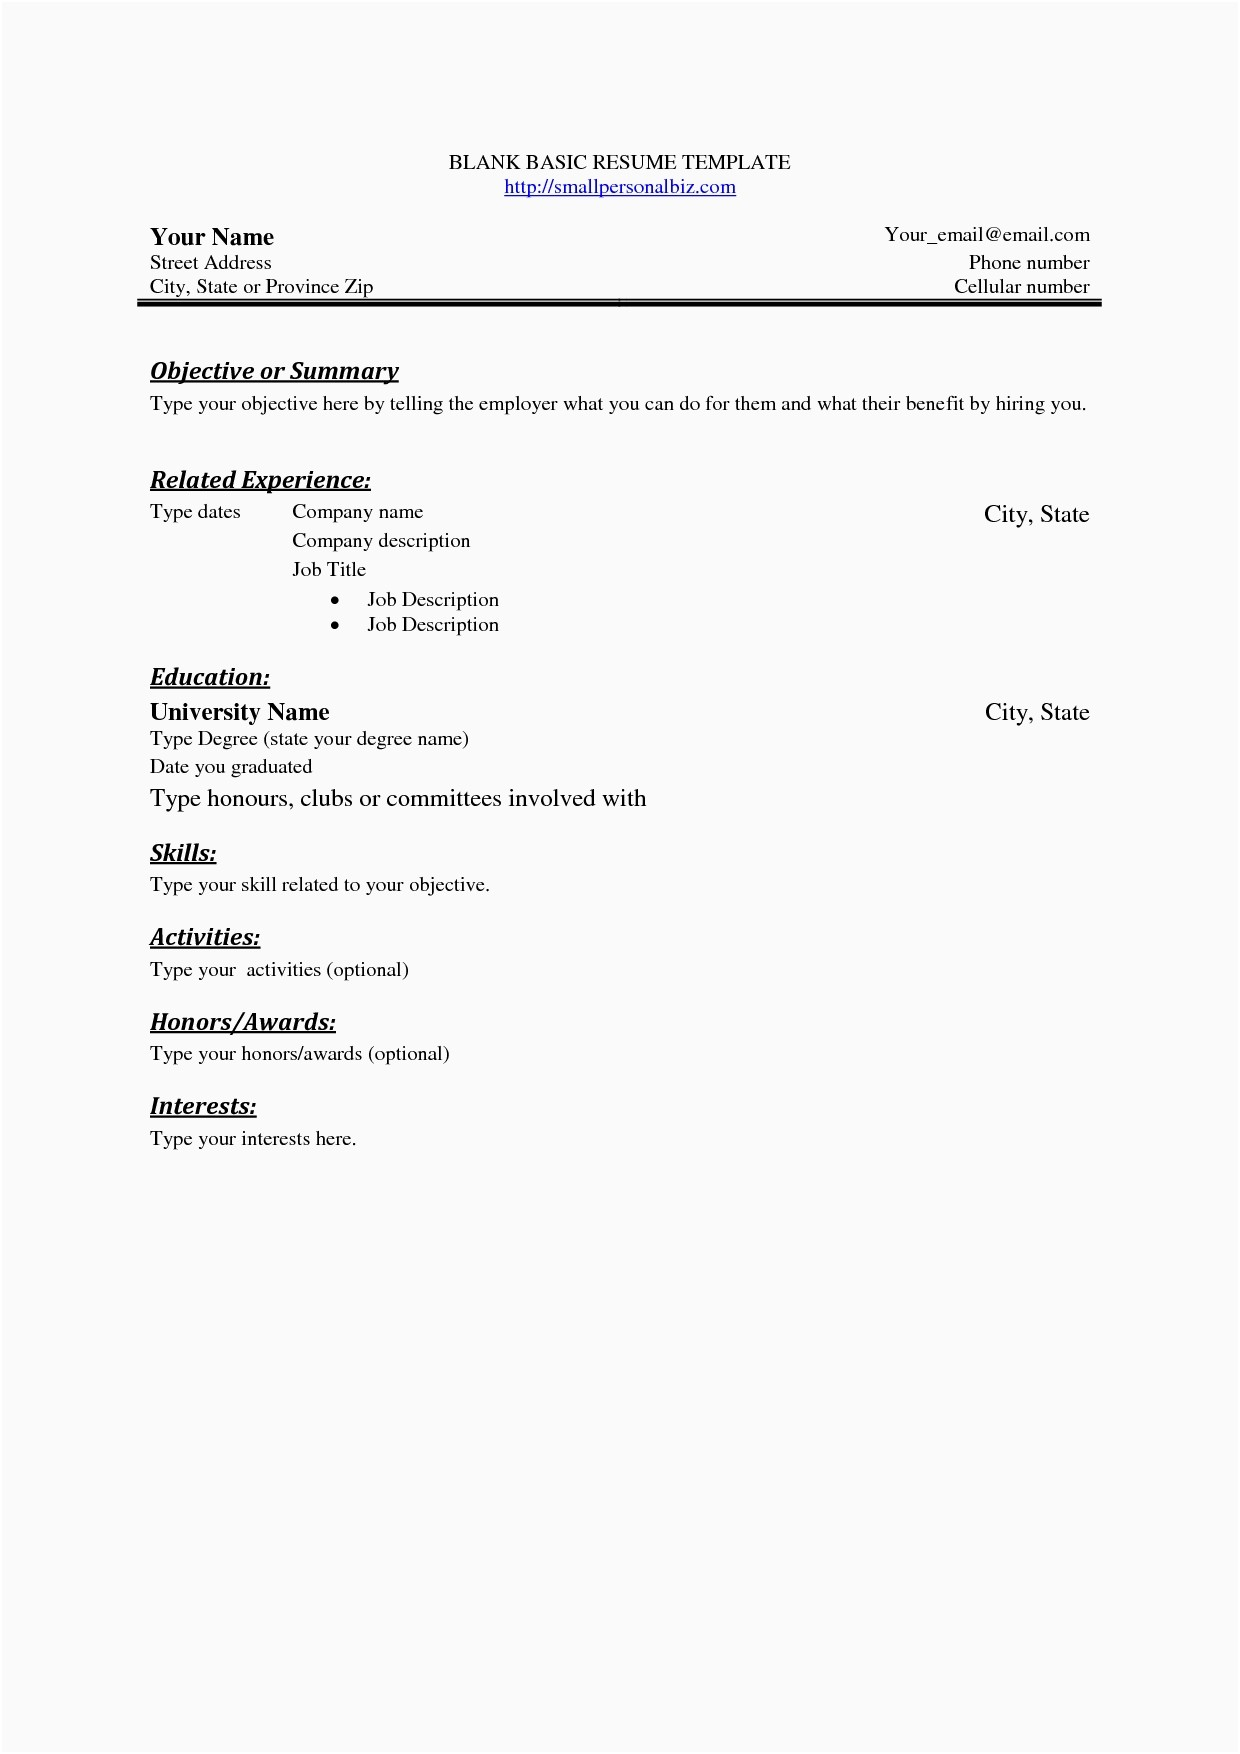 Letter Of Introduction Template - Letter Introduction Template